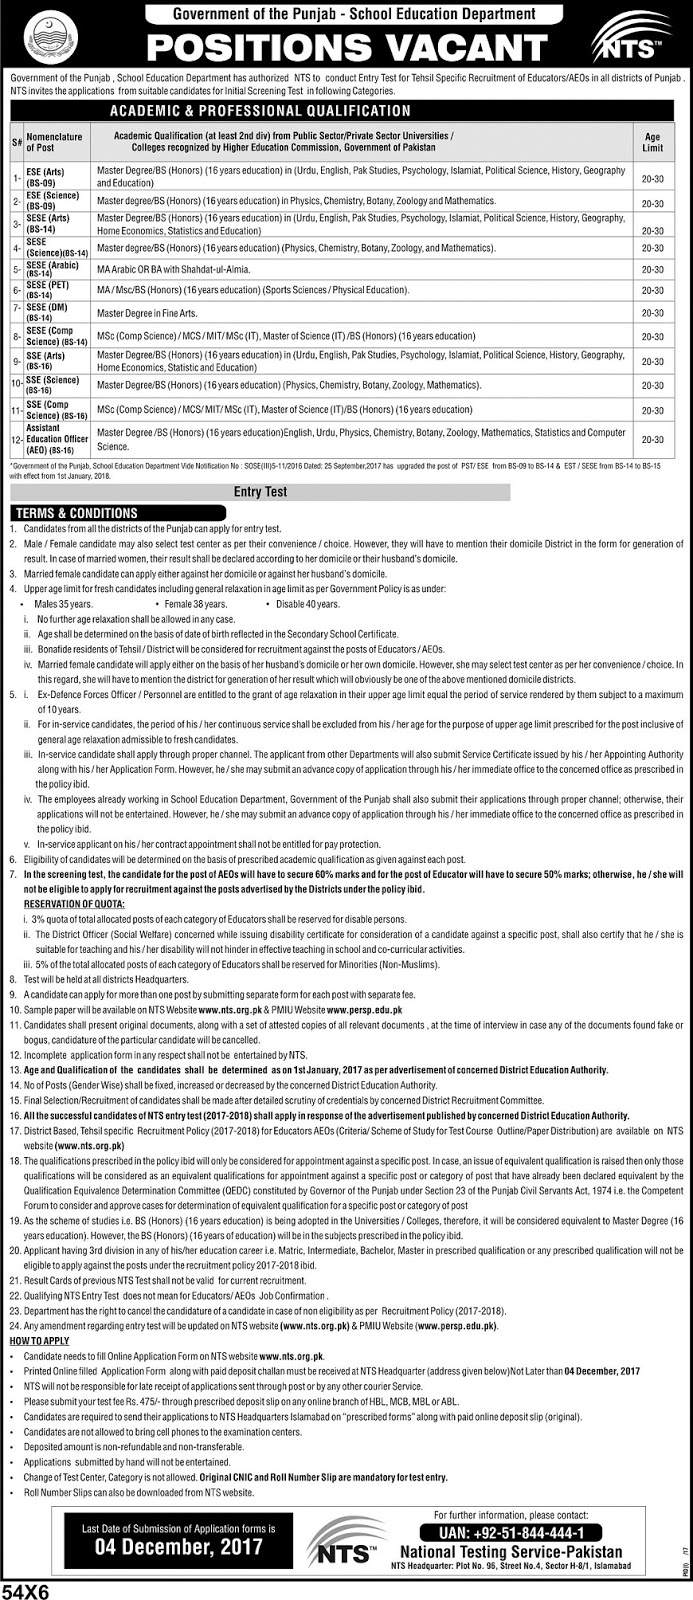 Jobs in Punjab, Pakistan Jobs, Jobs in Pakistan, Jobs in Lahore, Jobs in Faisalabad, Jobs for Teachers, Educator Jobs 2017, AEO Jobs 2017, Jobs in Multan, Jobs in DG Khan, Jobs in Rawalpindi, Jobs in Sargodha, Jobs in Layyah, Jobs in Kot Addu, Jobs in Samundri, Jobs in Sheikhupur, Jobs in Sahiwal, Jobs in Vehari, Jobs in Fatehpur, Jobs in Attock, Jobs in Mianwali, Jobs in Bhawalpur, Jobs in Rahim Yar Khan, Jobs in Kalar Kahar, Jobs in Jhang, Jobs in Gujranwala, Jobs in Sialkot, Jobs in Gujrat